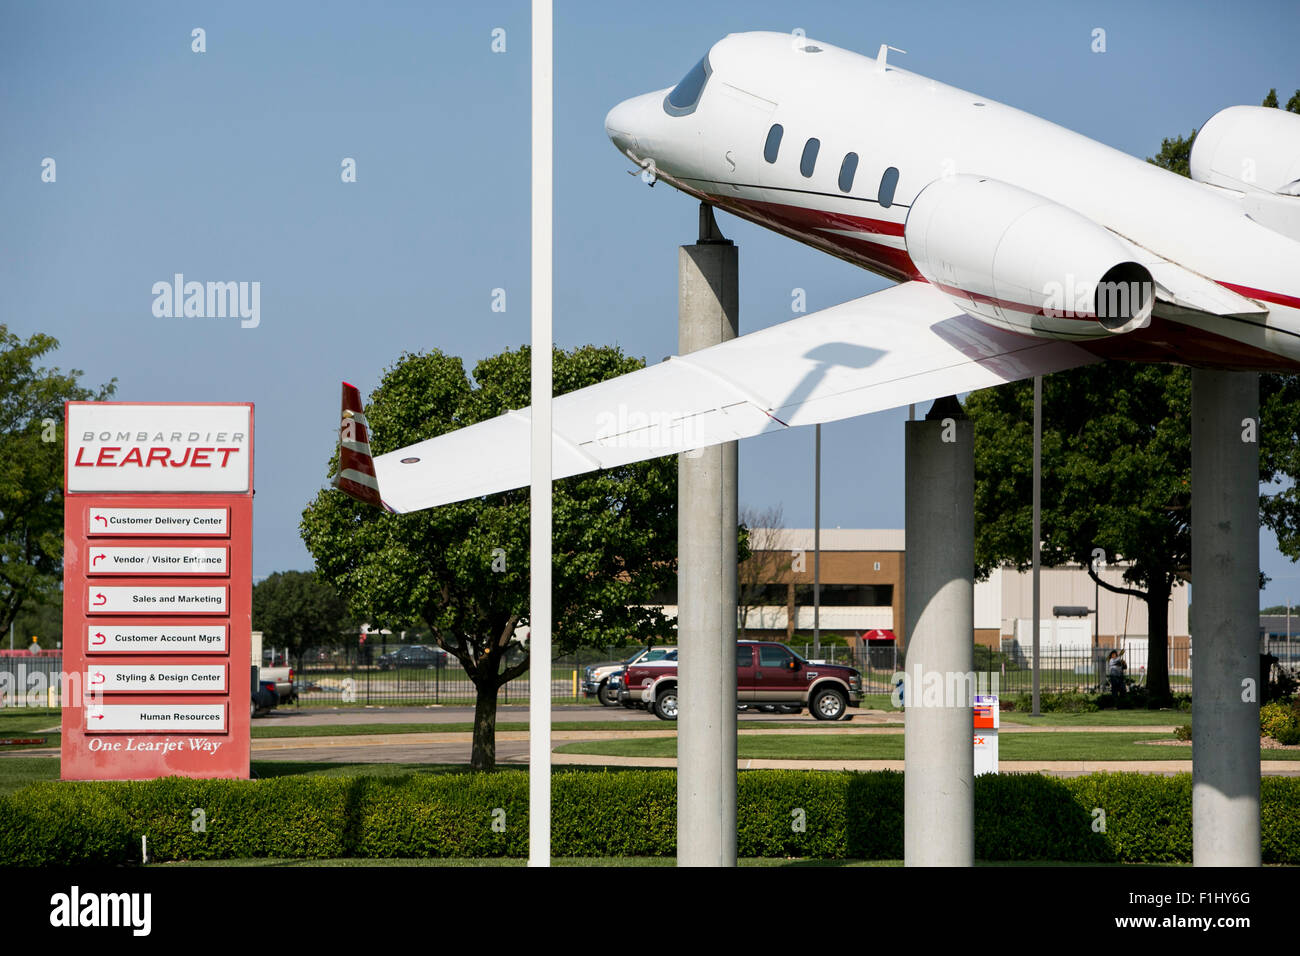 A logo sign outside of the headquarters of the Bombardier Learjet Corporation in Wichita, Kansas, on August 22, - Stock Image